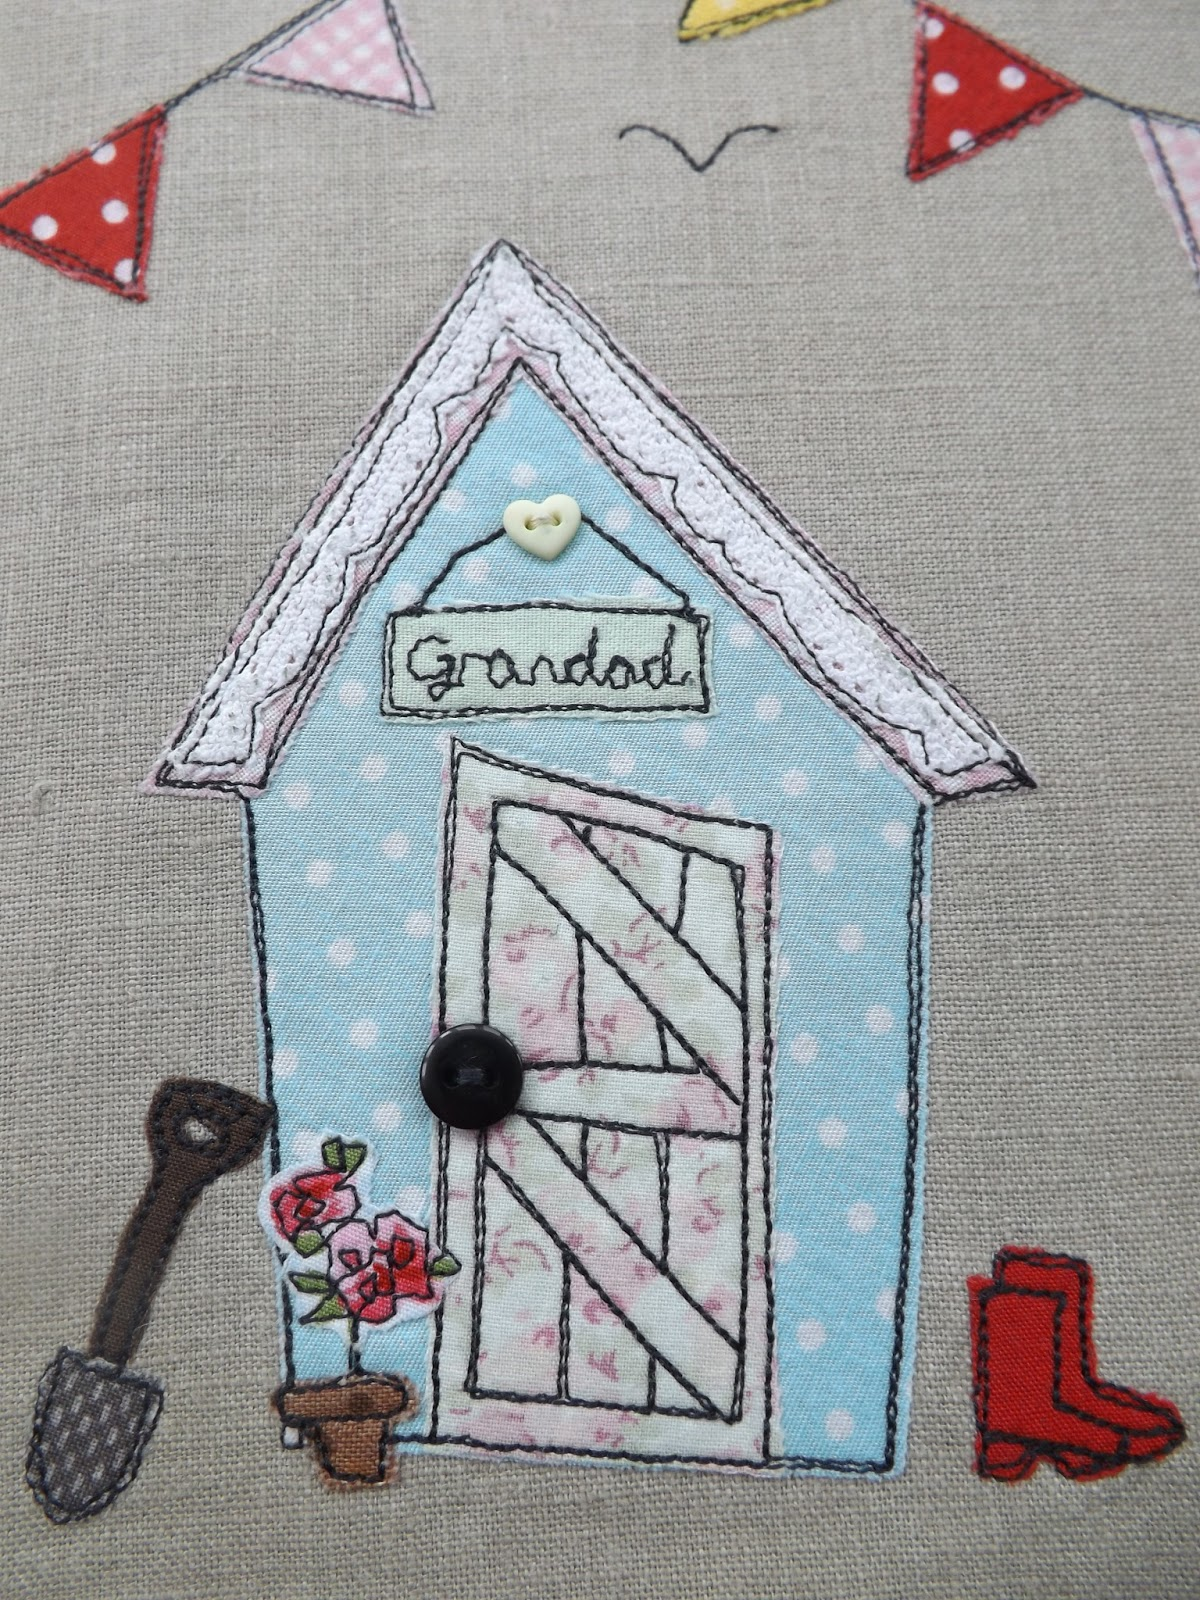 Sewforsoul embroidered gardening journal for Garden shed quilting